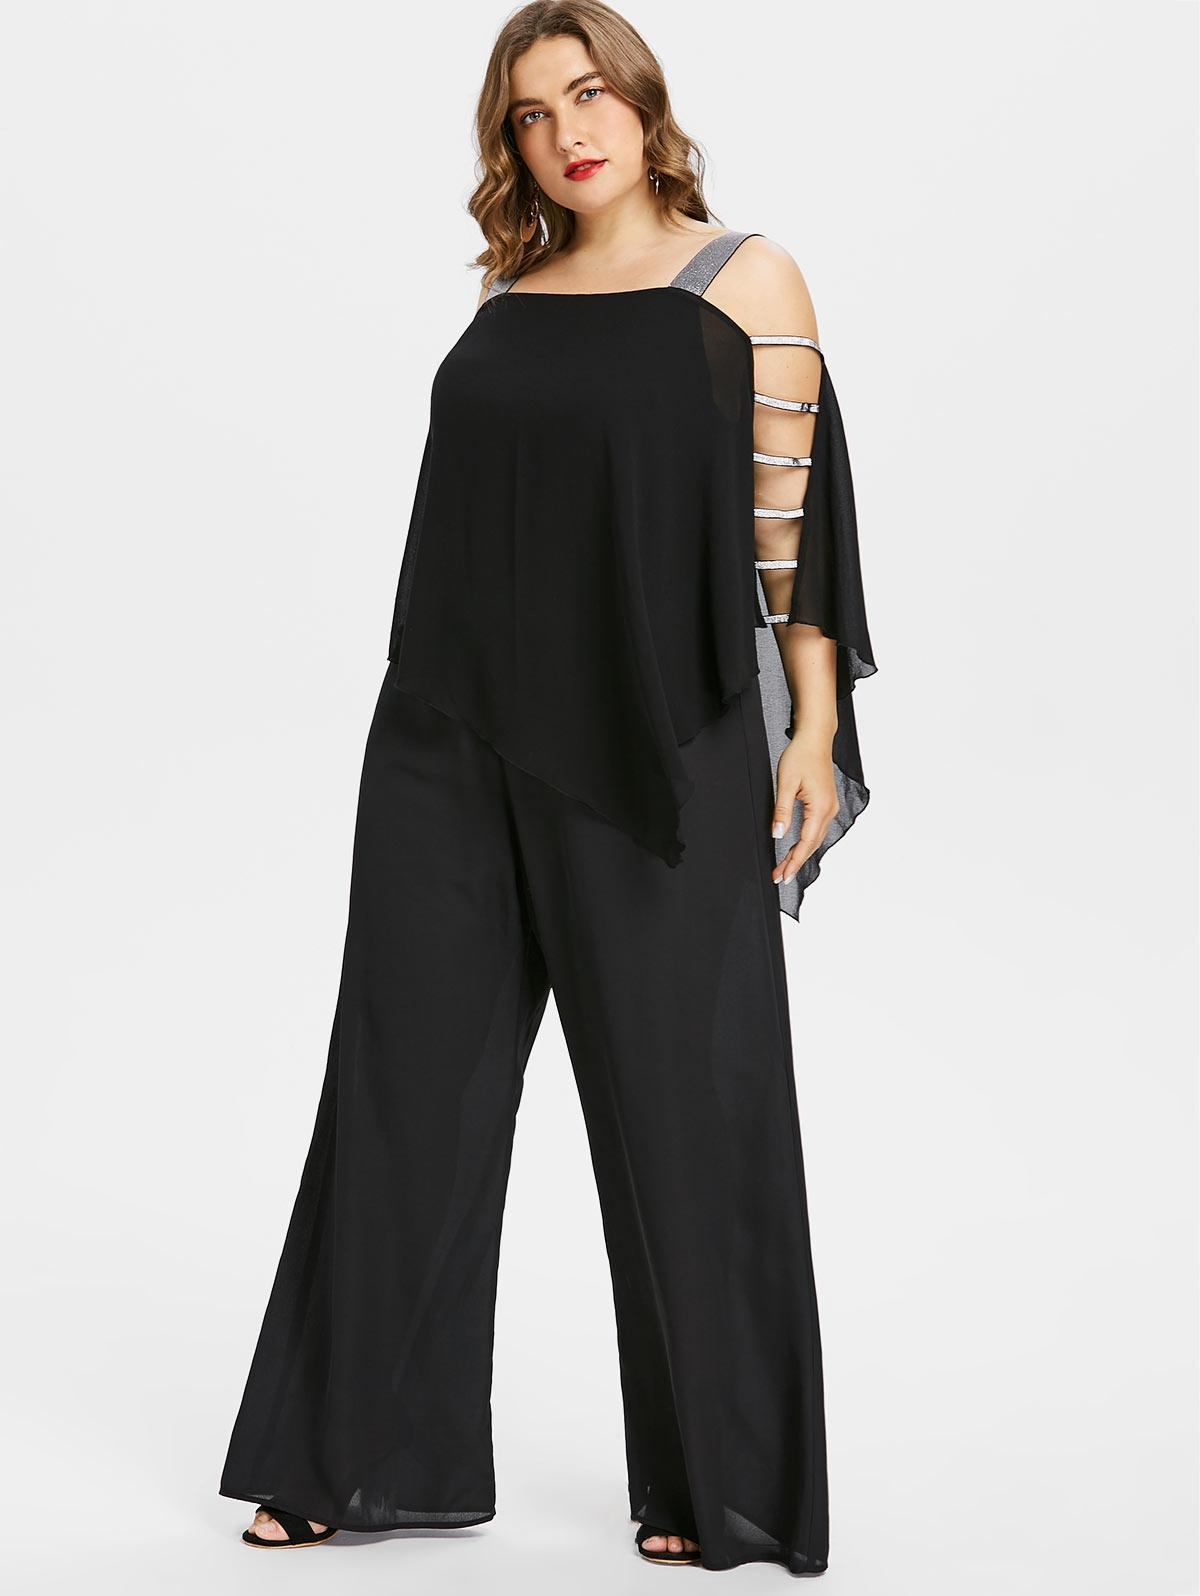 Wholesale Plus Size Jumpsuits Women Plus Size Ladder Cut Out Overlay